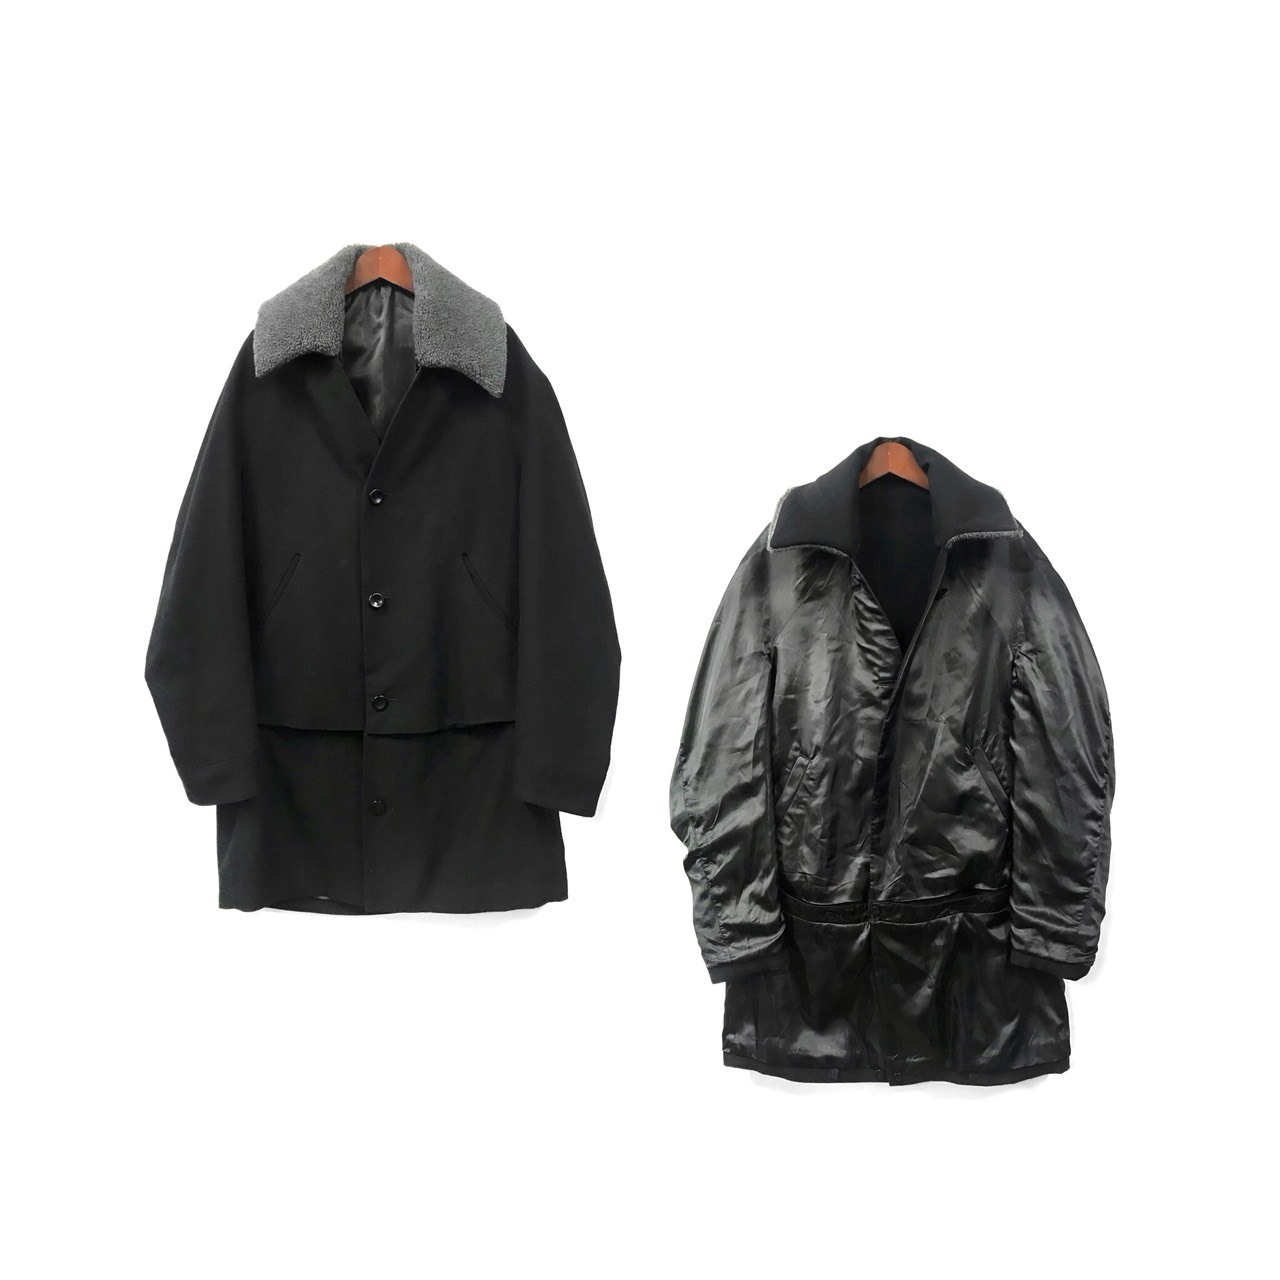 Brusco,k - Reversible Coat (size - F) ¥28000+tax → ¥22400+tax